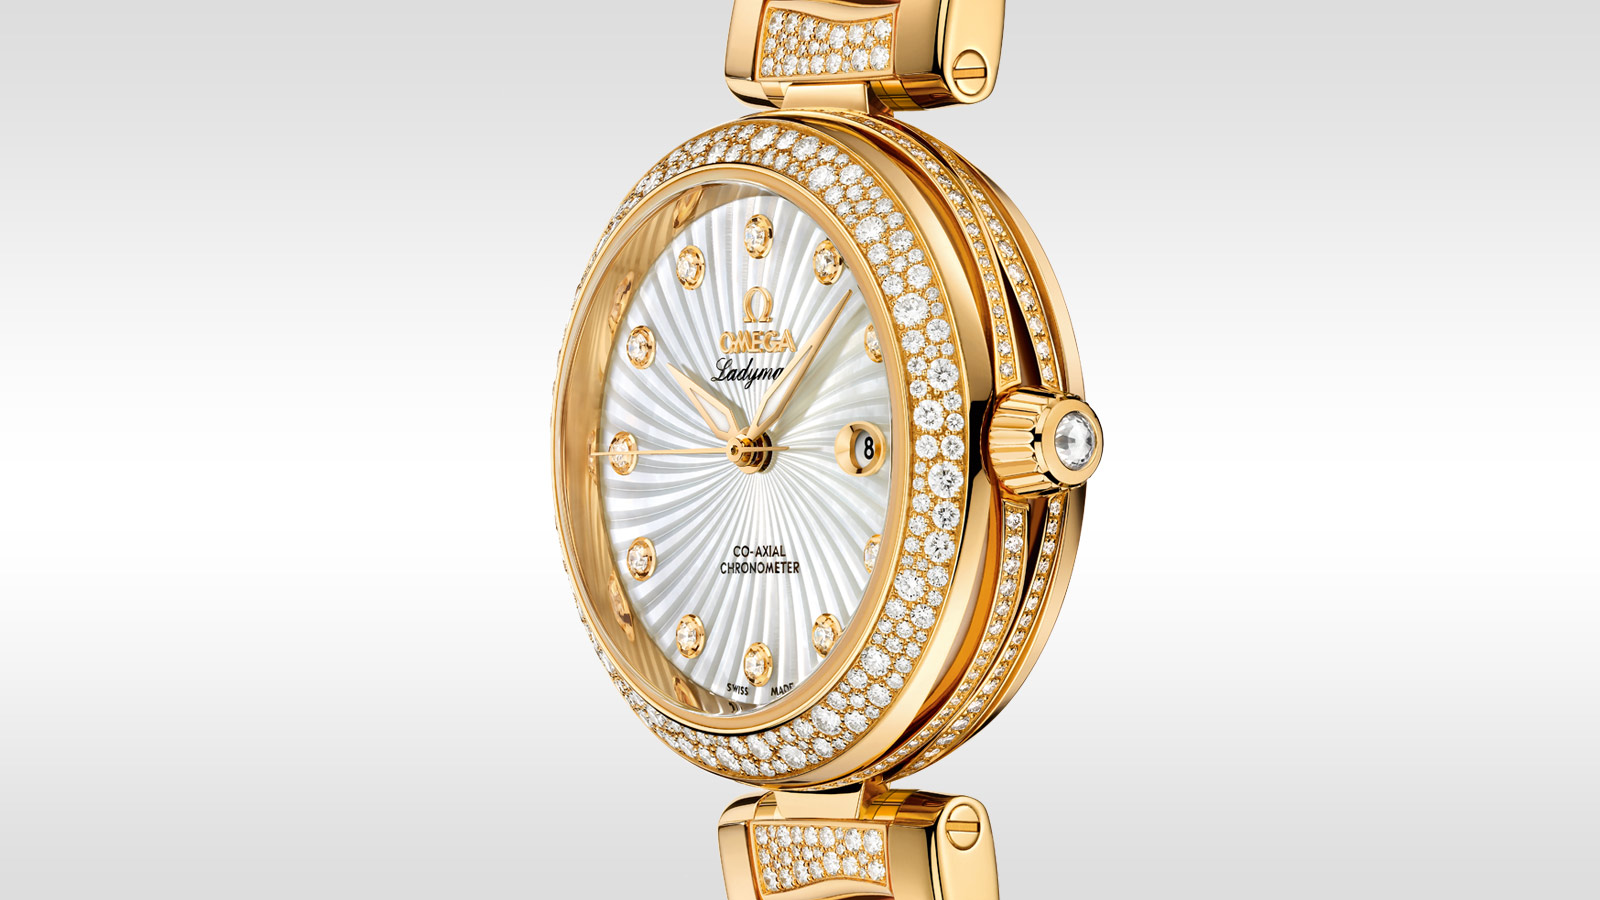 De Ville Ladymatic Ladymatic Omega Co‑Axial 34 mm - 425.65.34.20.55.004 - Просмотреть 1